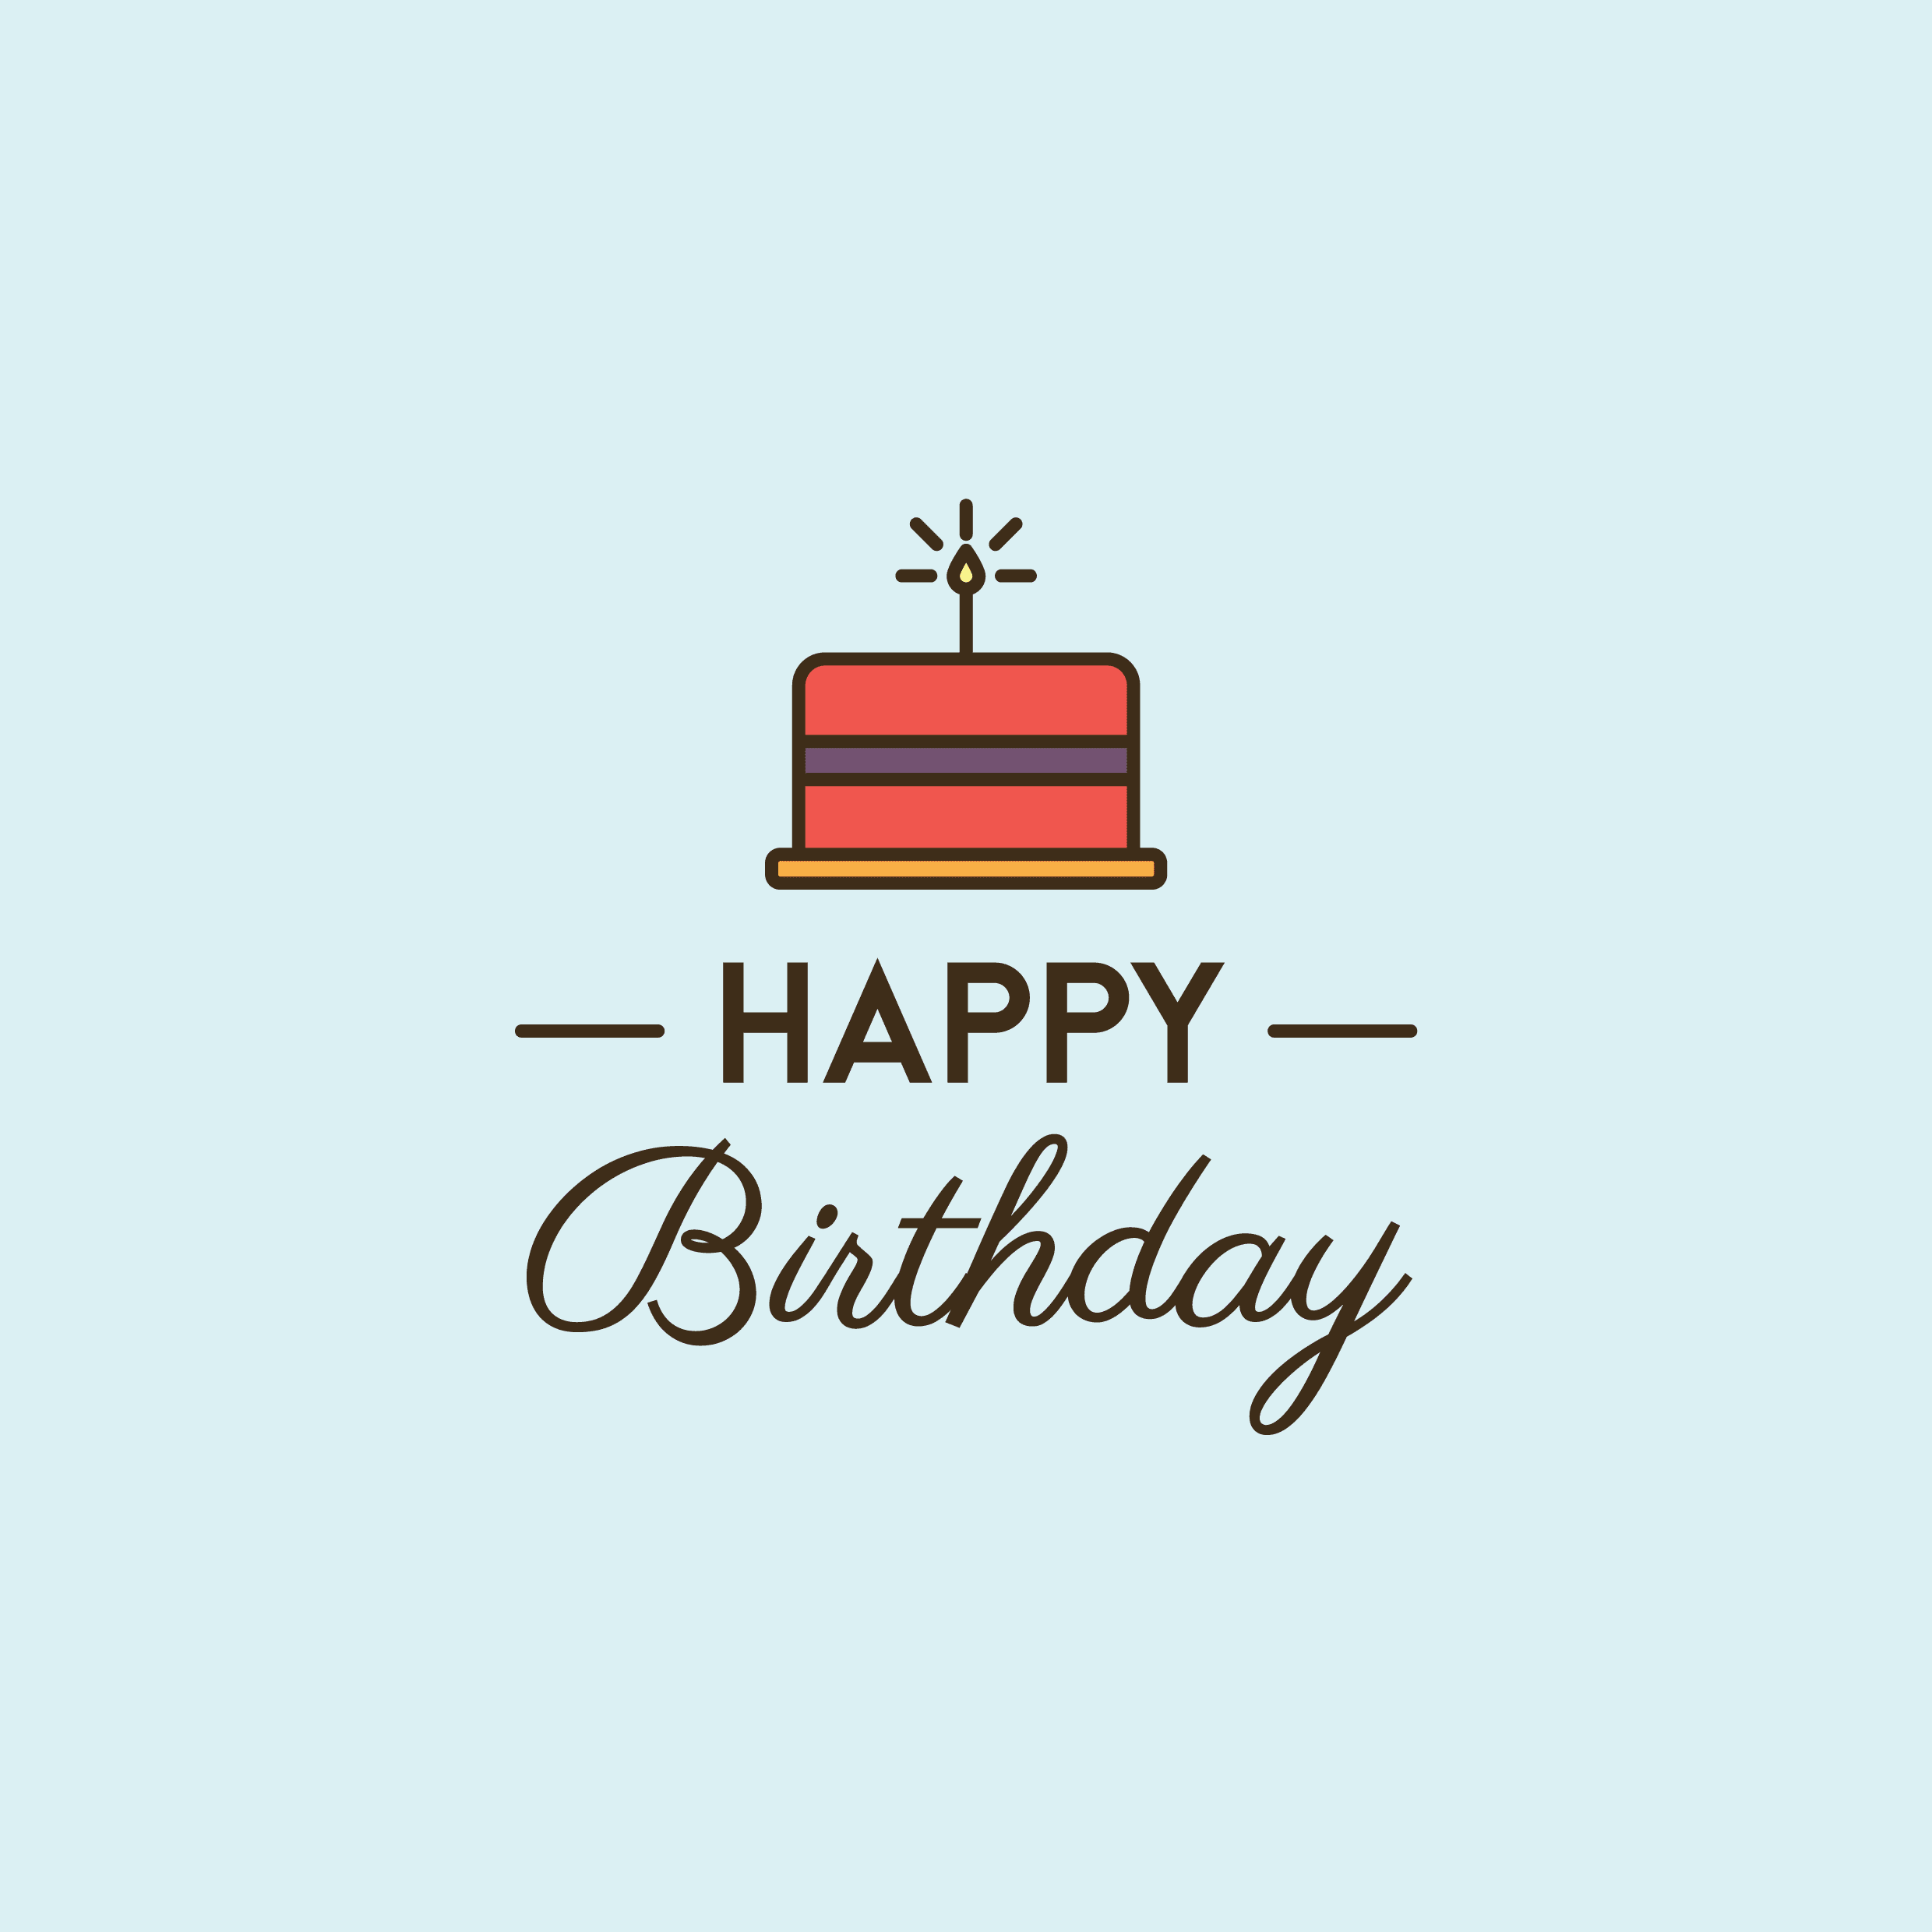 25 Favorite Birthday ECards and Sites 2017